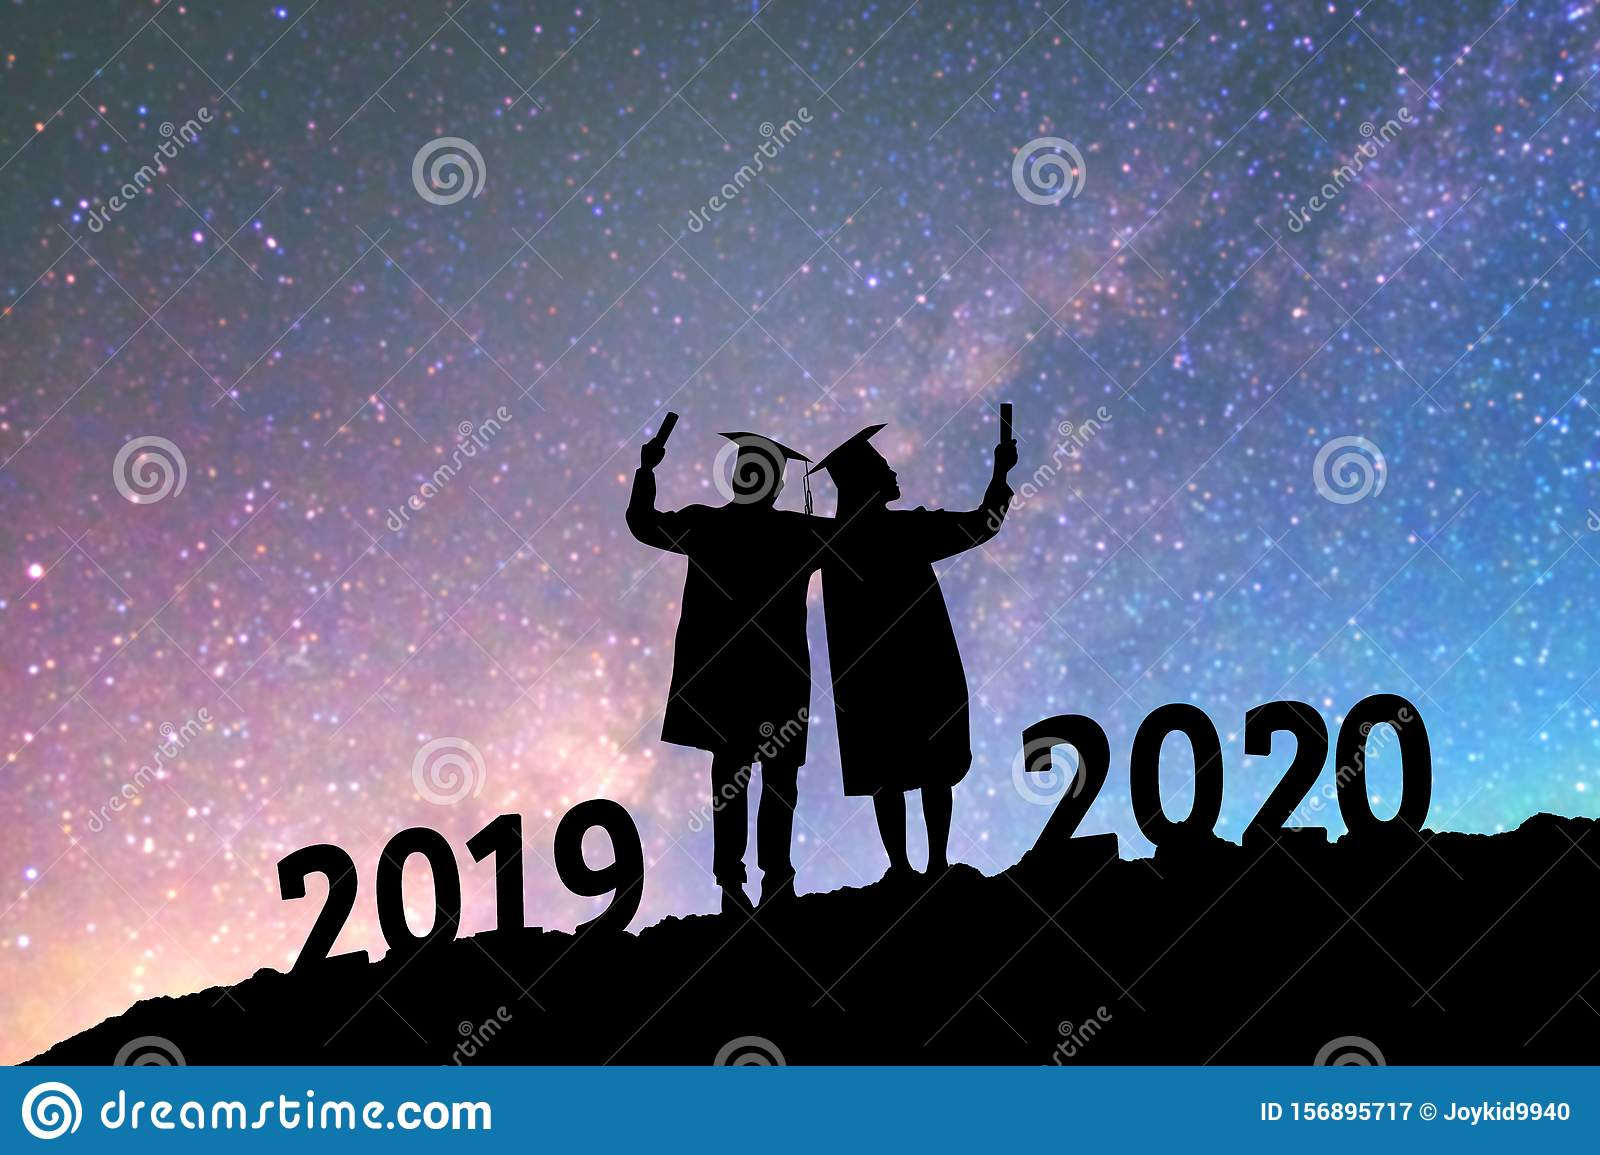 Graduation Background 2020.2020 New Year Silhouette People Graduation In 2020 Years